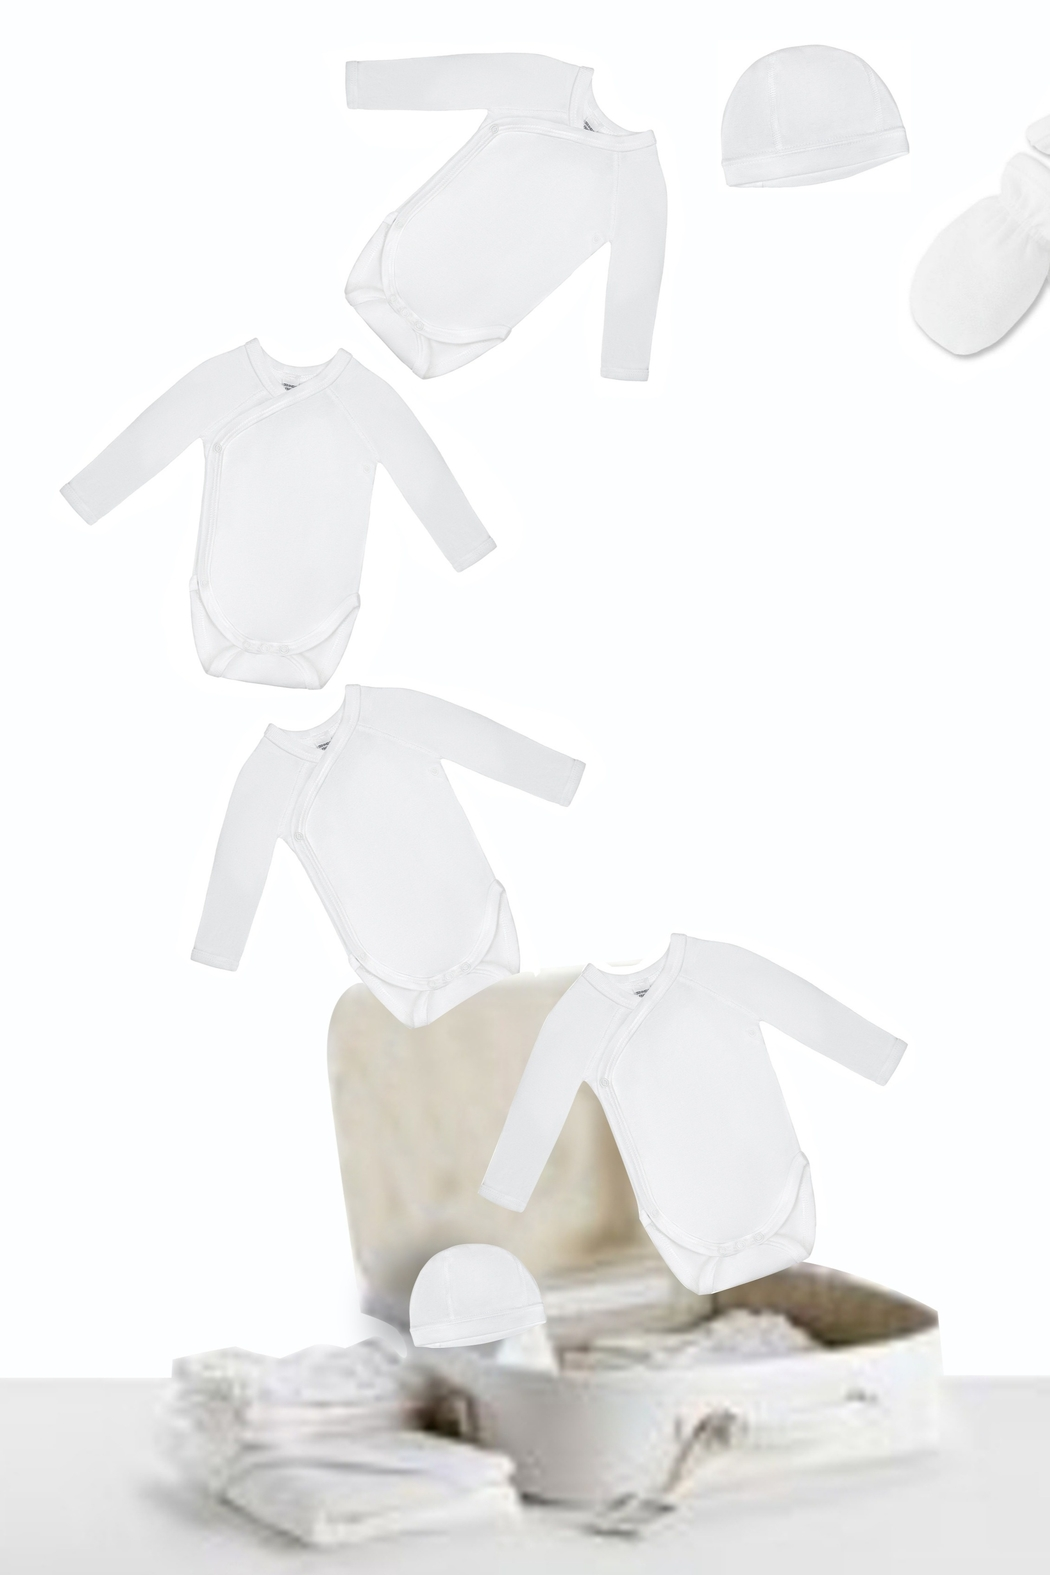 Petit Bateau  Infant bodysuits (onesies) for Girls and Boys with Bunnies   Little Loungers - Main Image